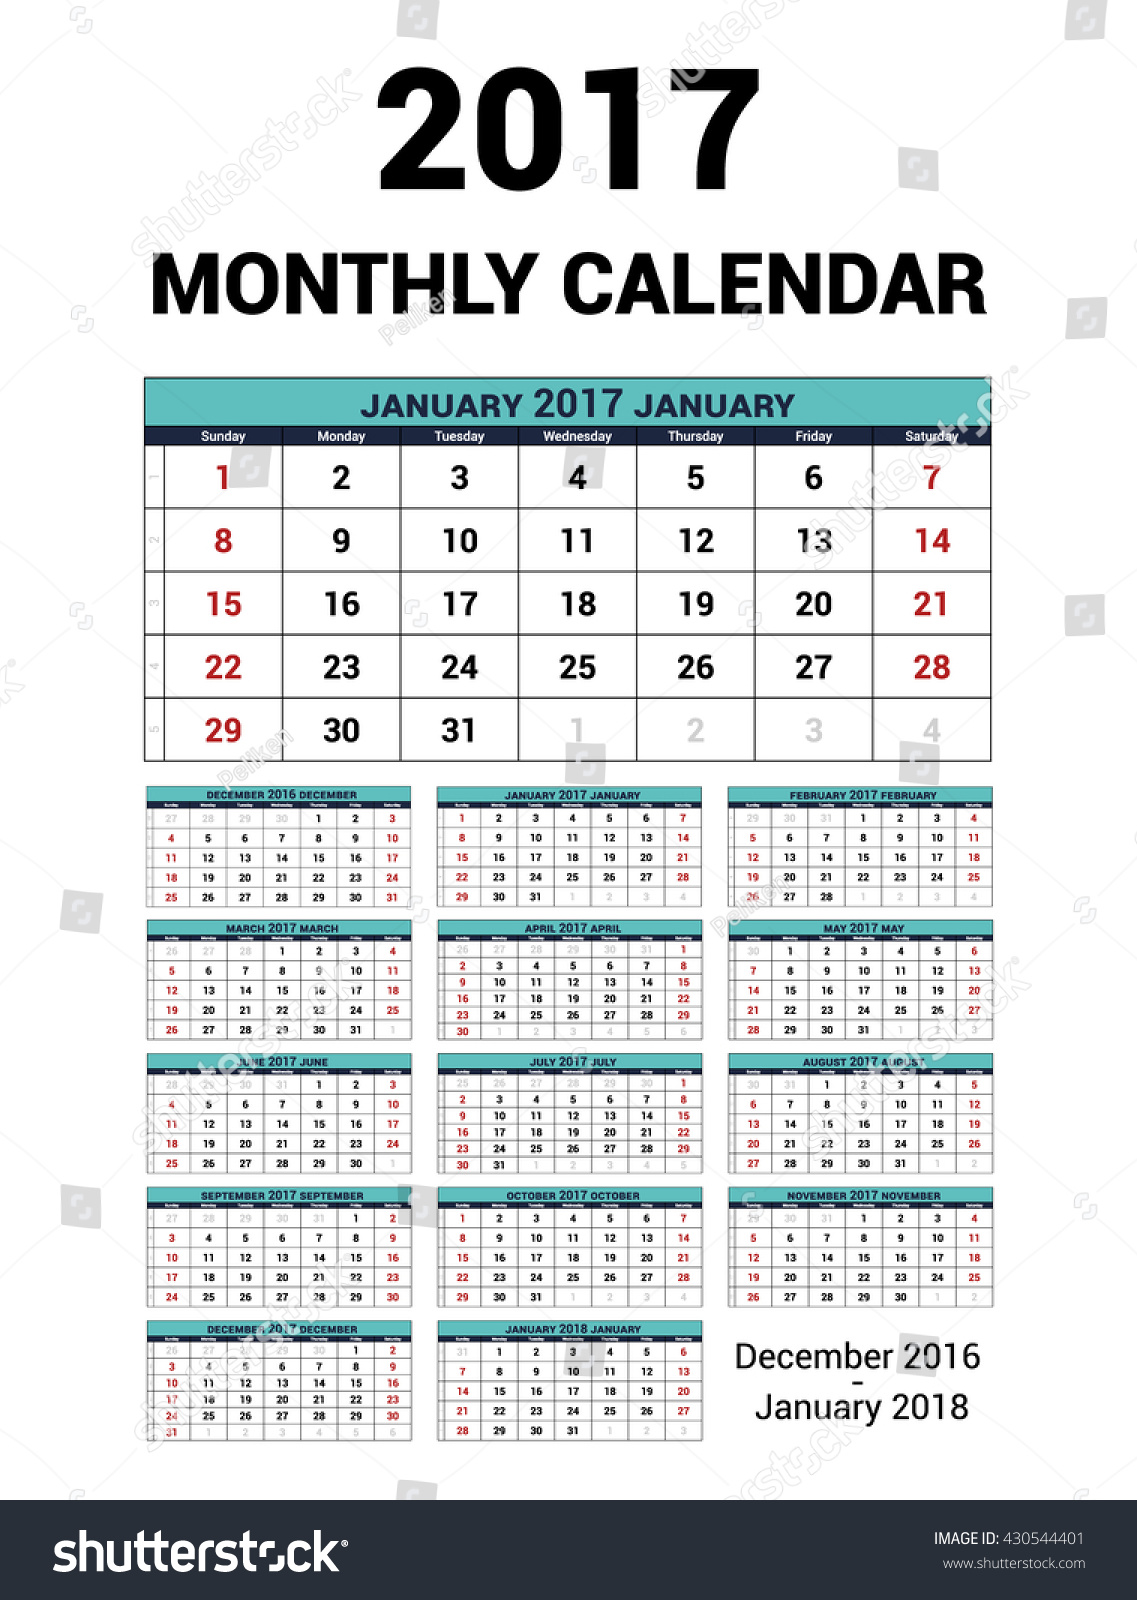 Quarterly Calendar Design : Calendar monthly year vector stationery stock